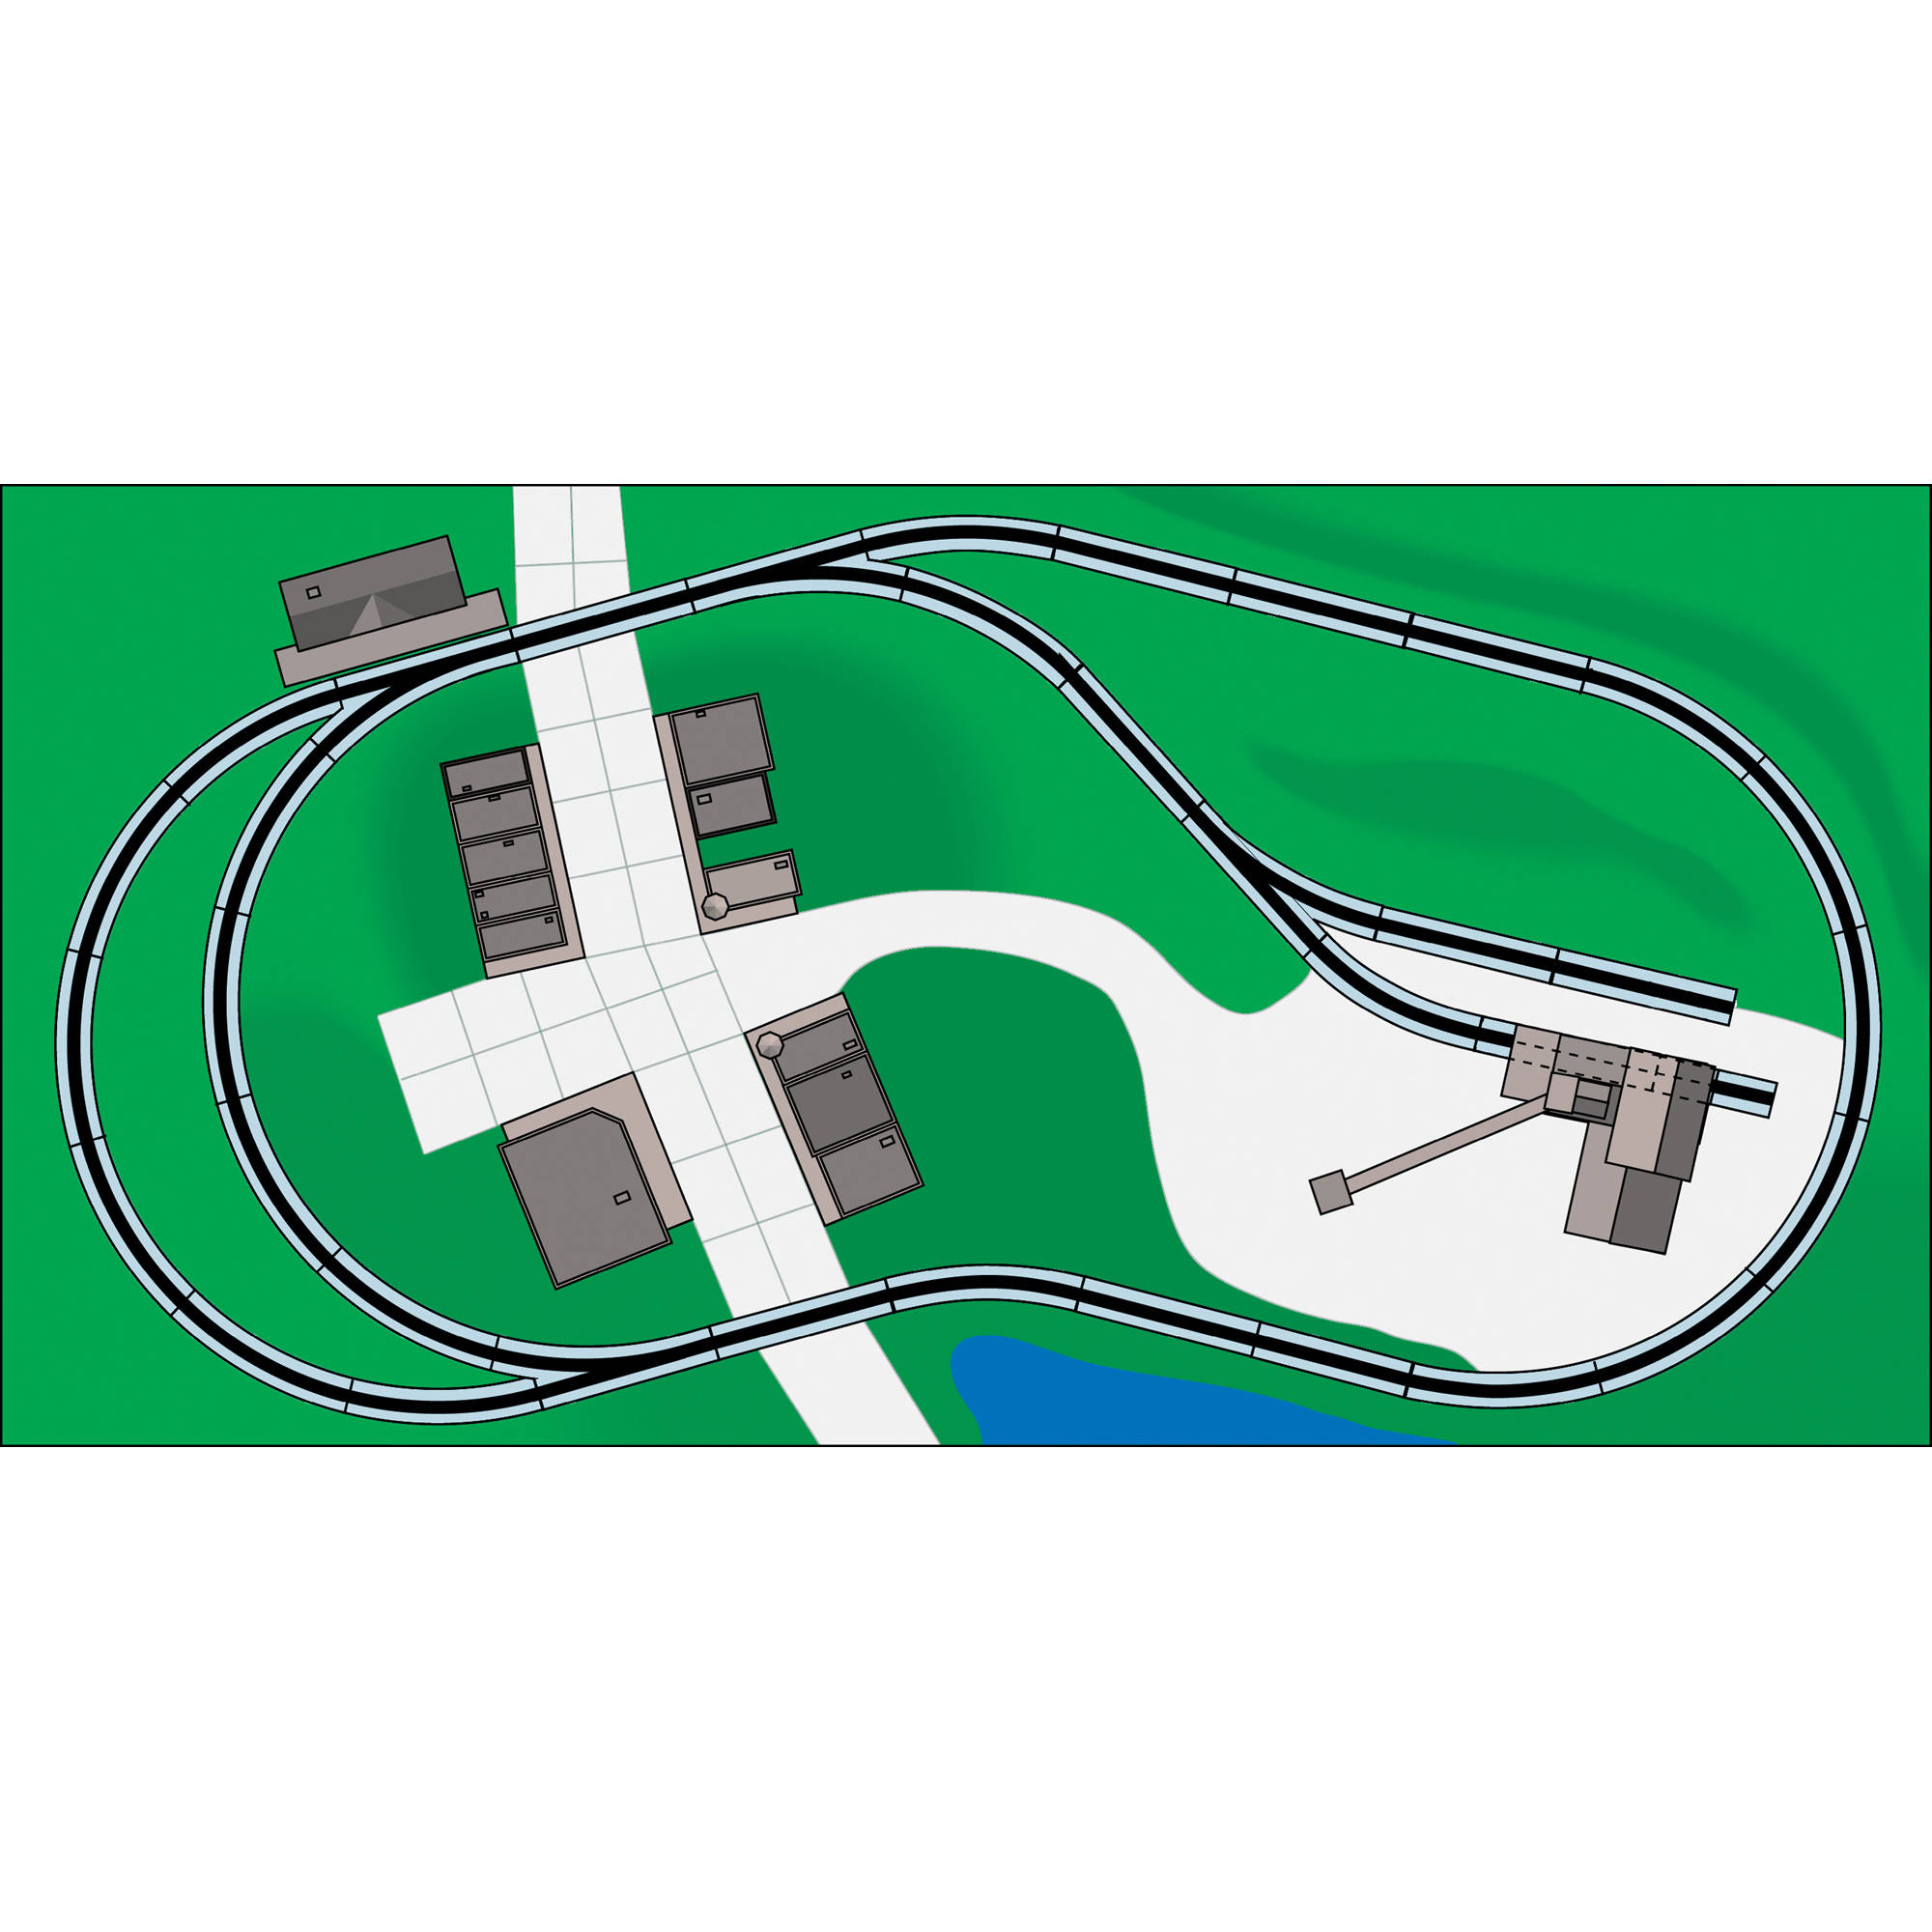 Bachmann Trains Nickel Silver Worlds Greatest Hobby First Railroad Track Switch Wiring Schematic Pack Ho Scale